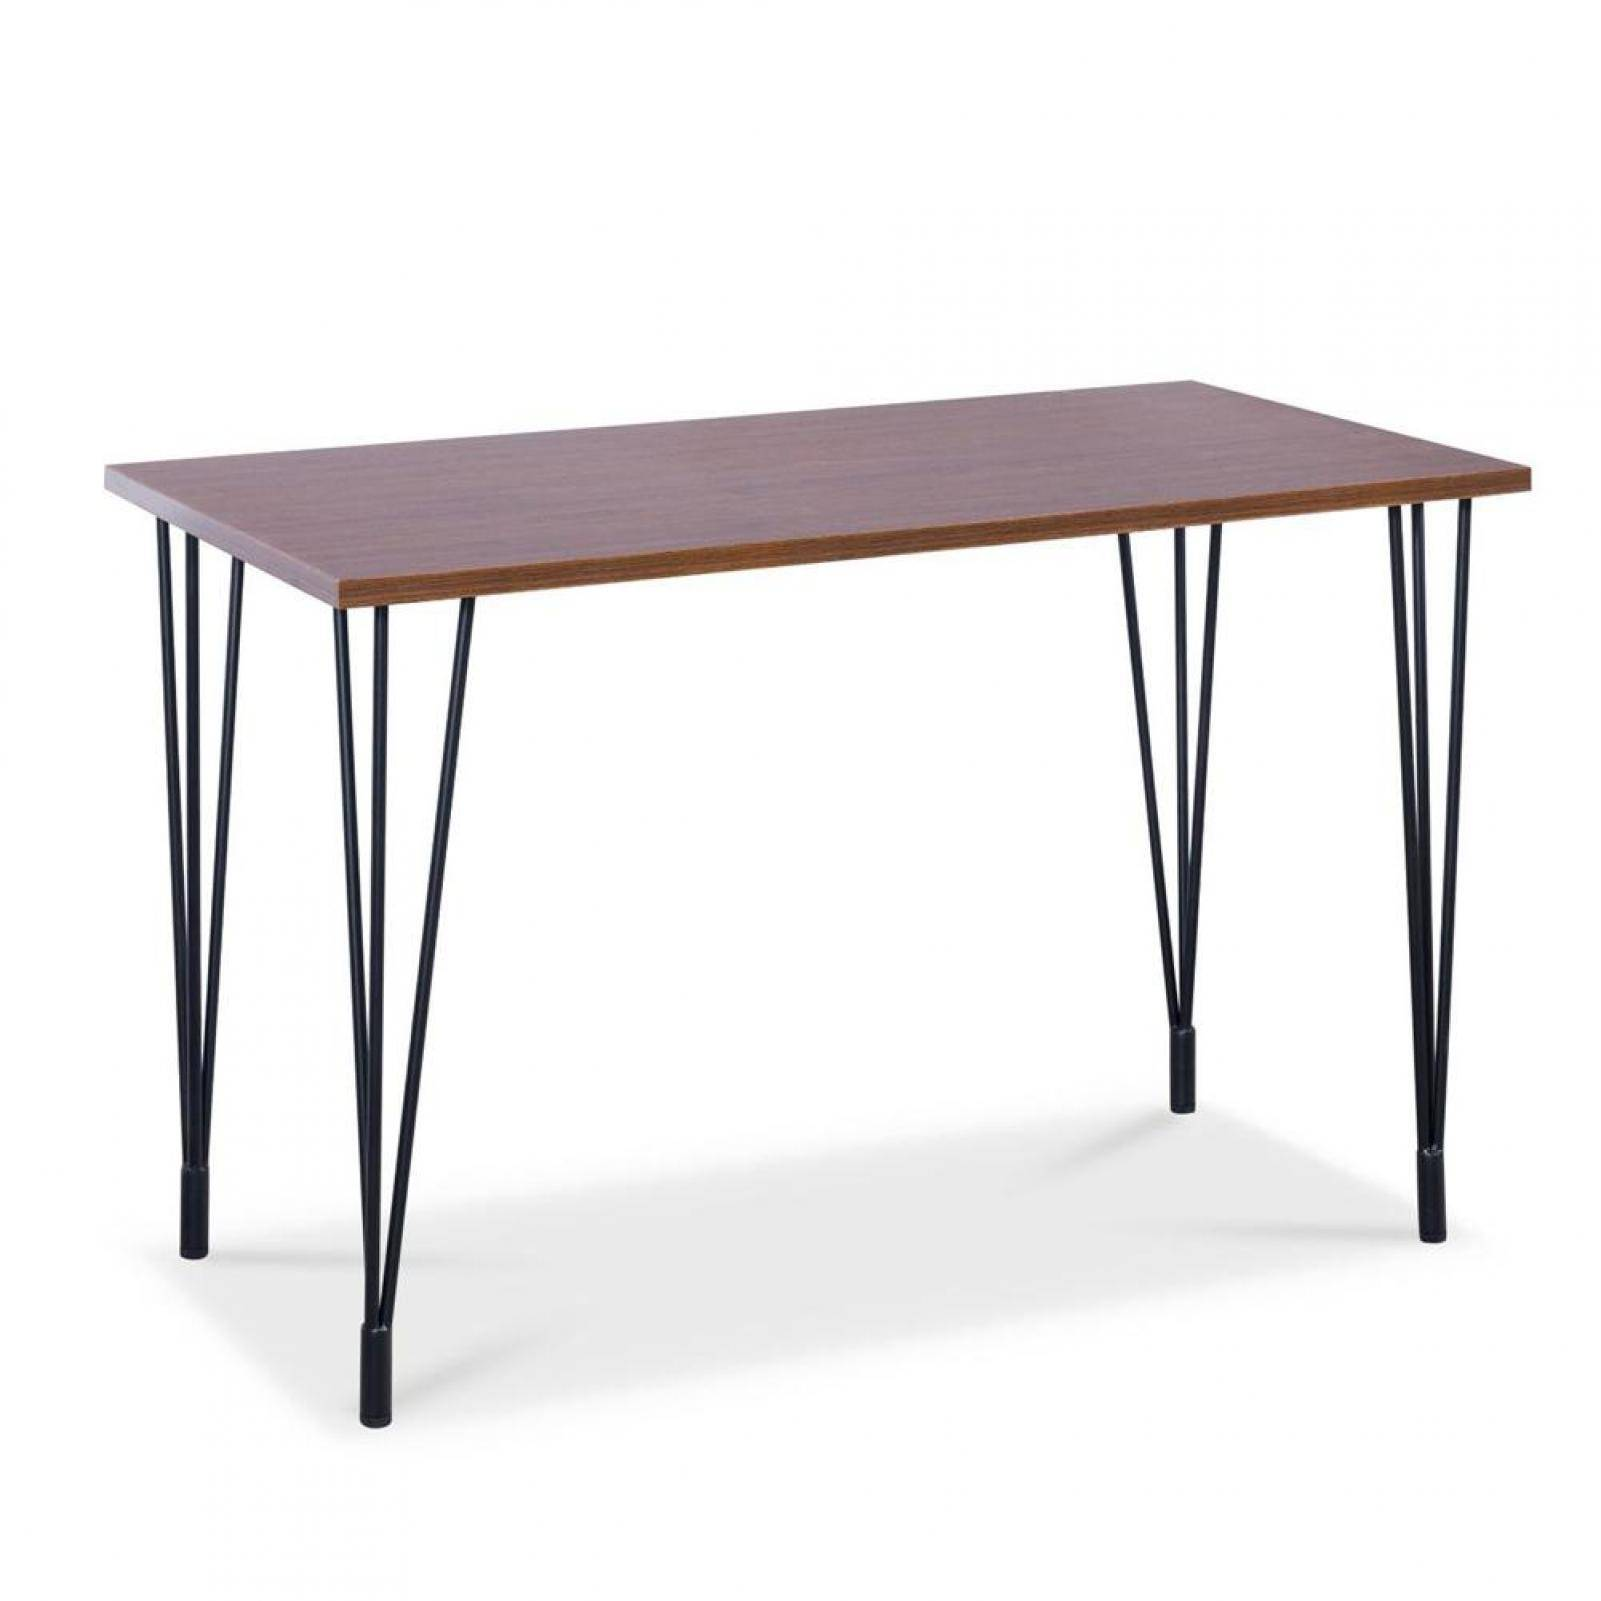 Wood table in white background